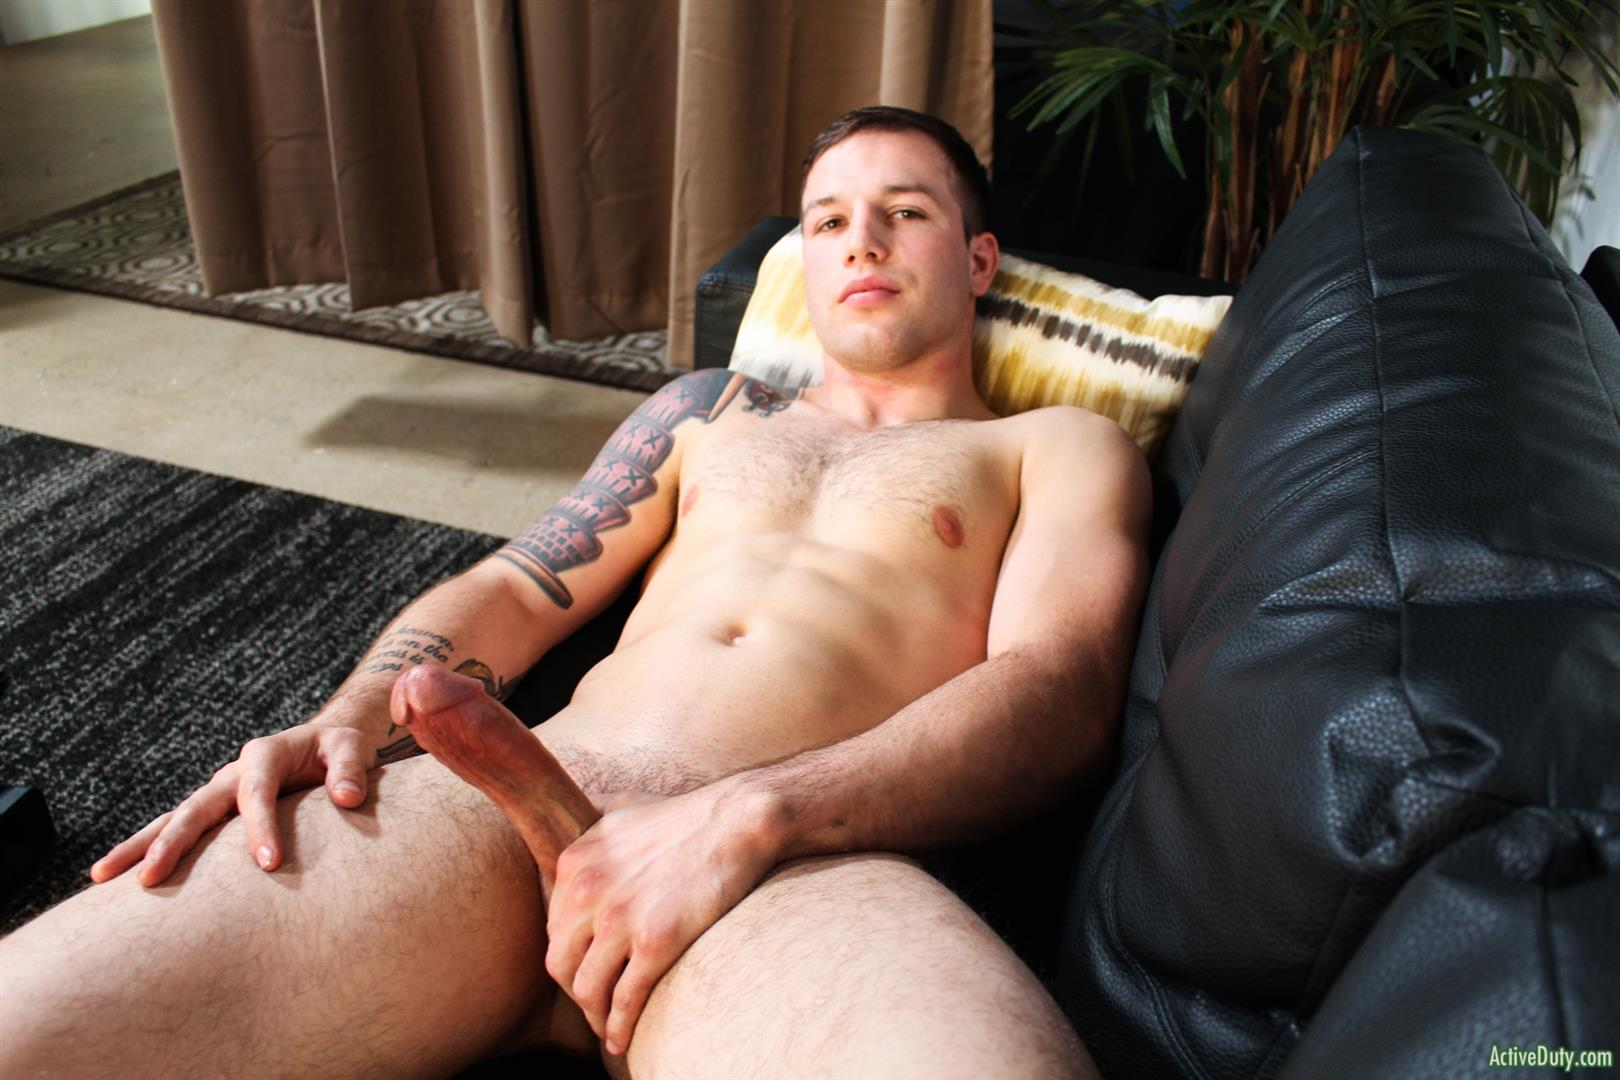 Active-Duty-Tim-Tank-Muscular-Marine-With-A-Thick-Cock-Jerk-Off-13 Muscular Straight Marine Jerking Off His Very Thick Dick